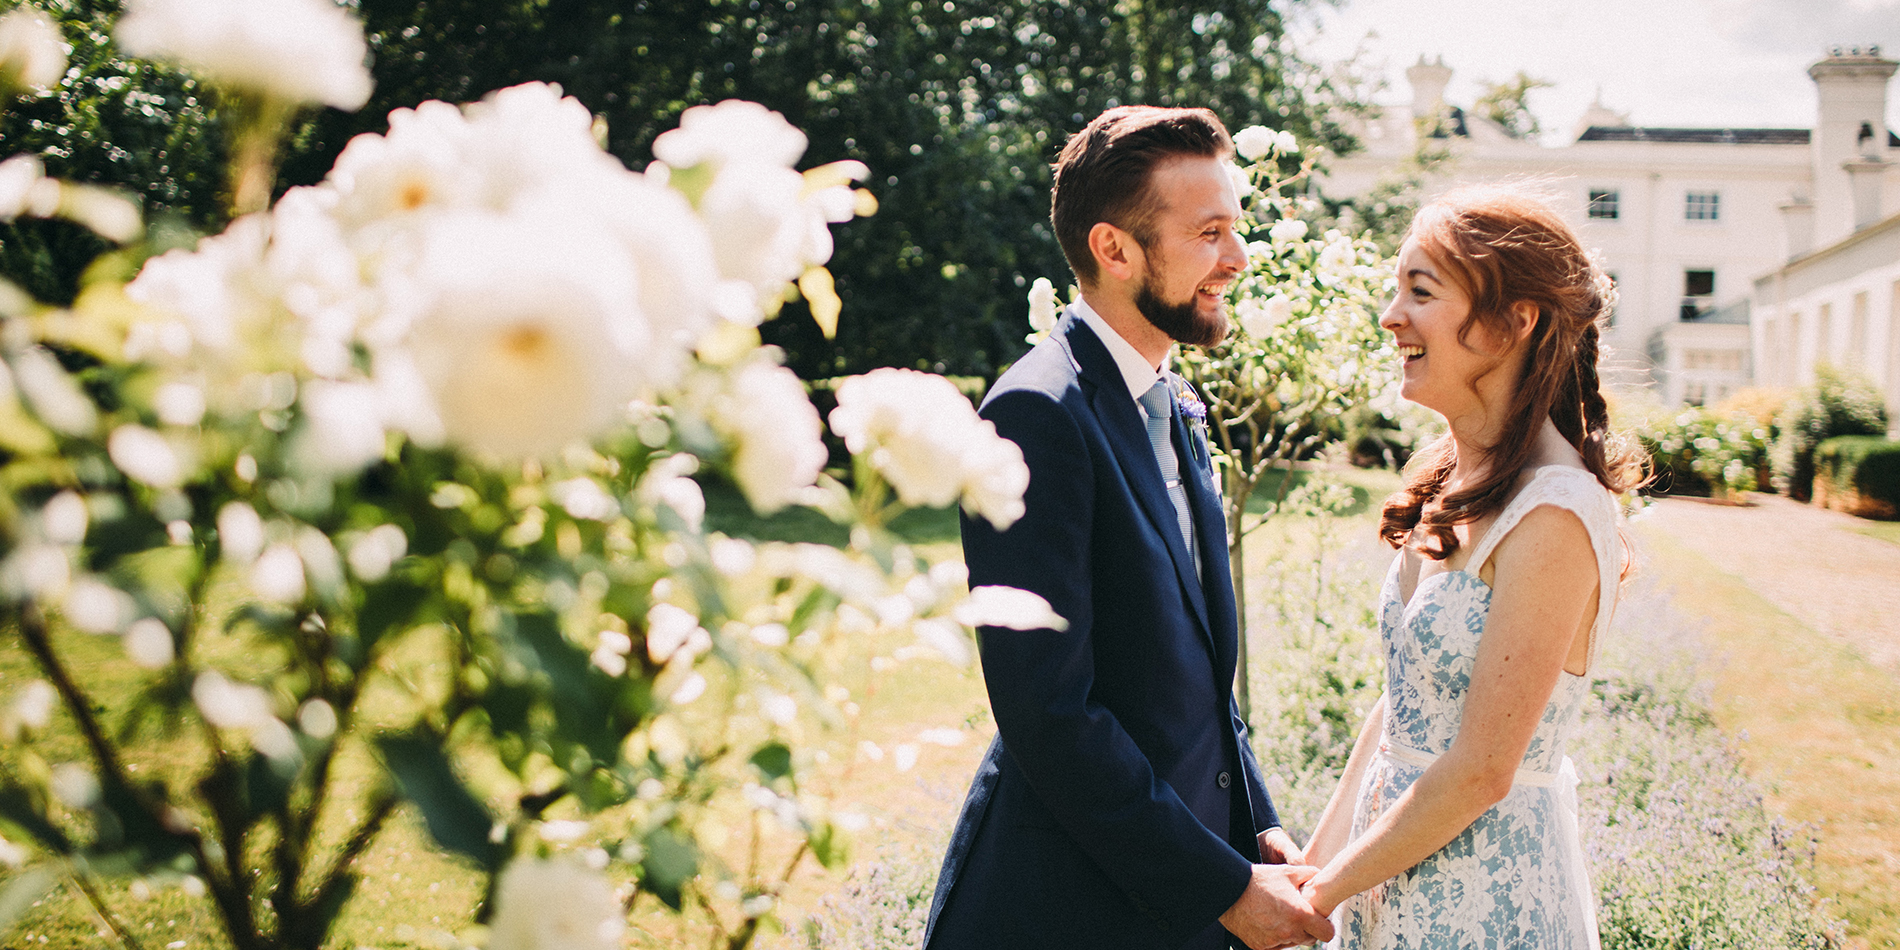 Auburn and Olly's real life wedding at Morden Hall in London